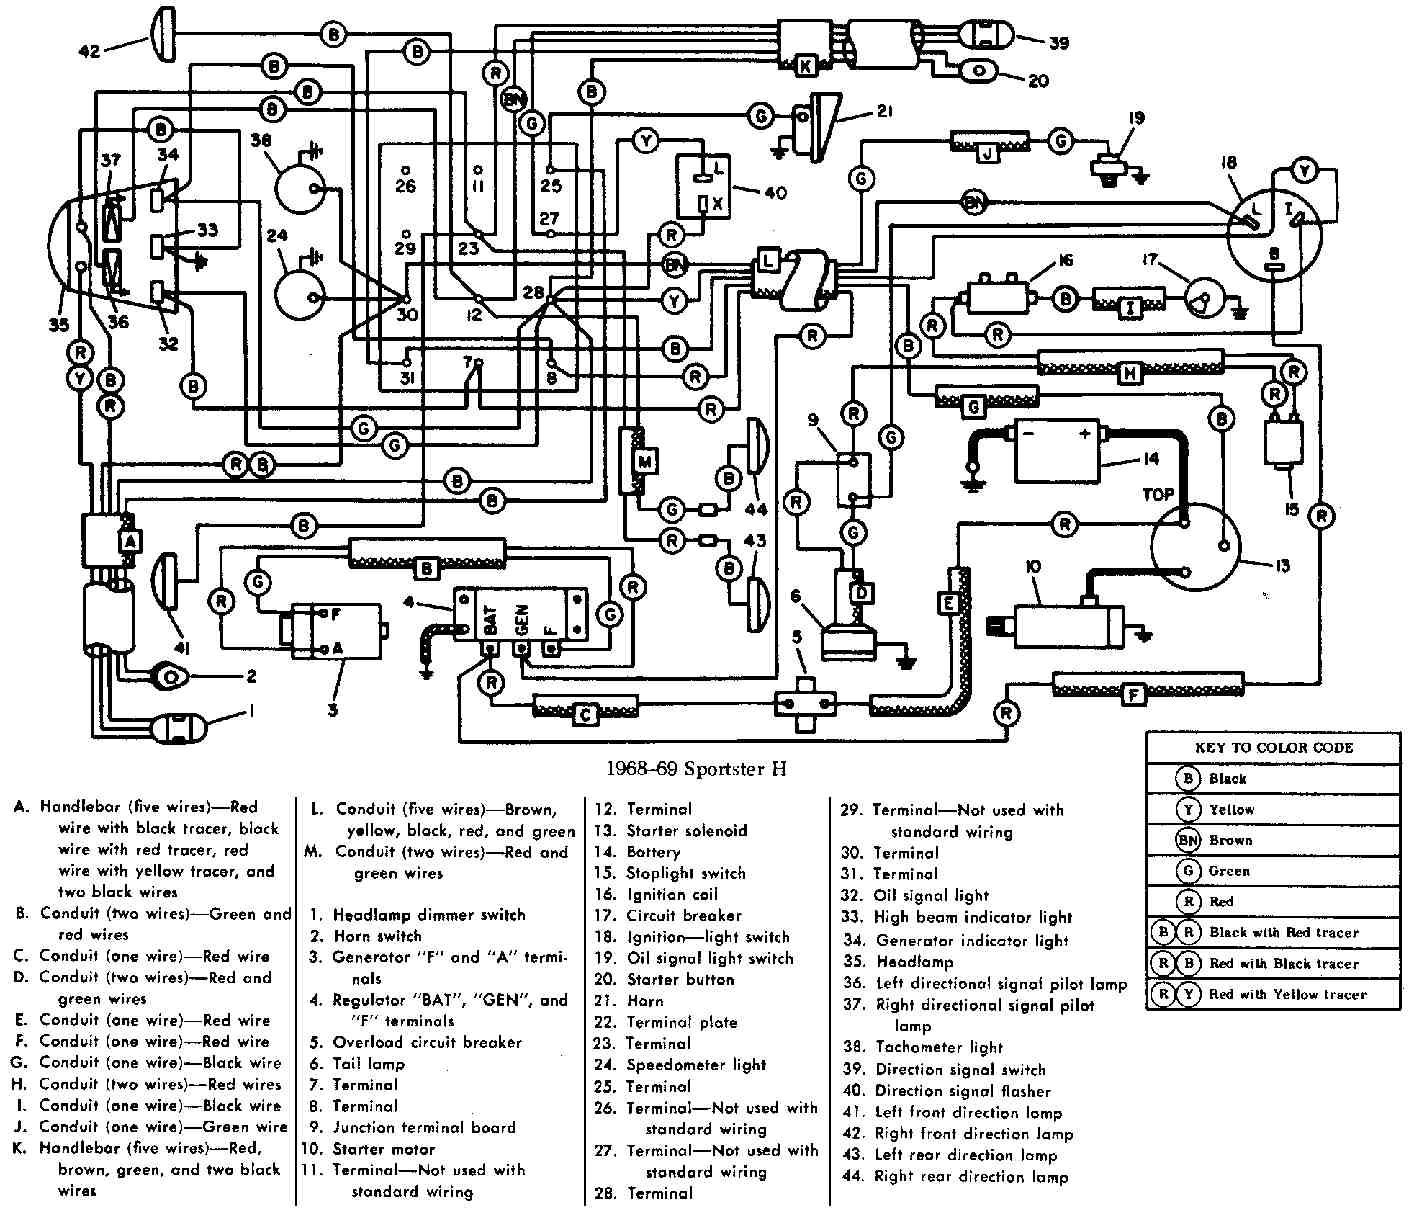 [SCHEMATICS_48IS]  Harley Davidson Sportster 1968-1969 Electrical Wiring Diagram | All about Wiring  Diagram… in 2020 | Electrical wiring diagram, Harley davidson sportster,  Motorcycle wiring | Wiring Diagram Sportster Circuit Breaker |  | Pinterest